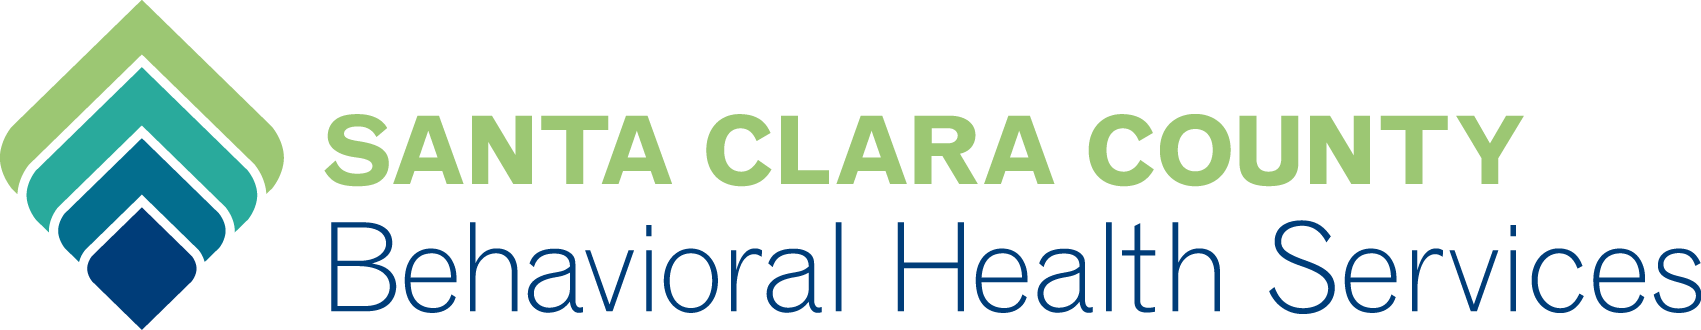 Santa Clara Valley Behavioral Health Services Logo